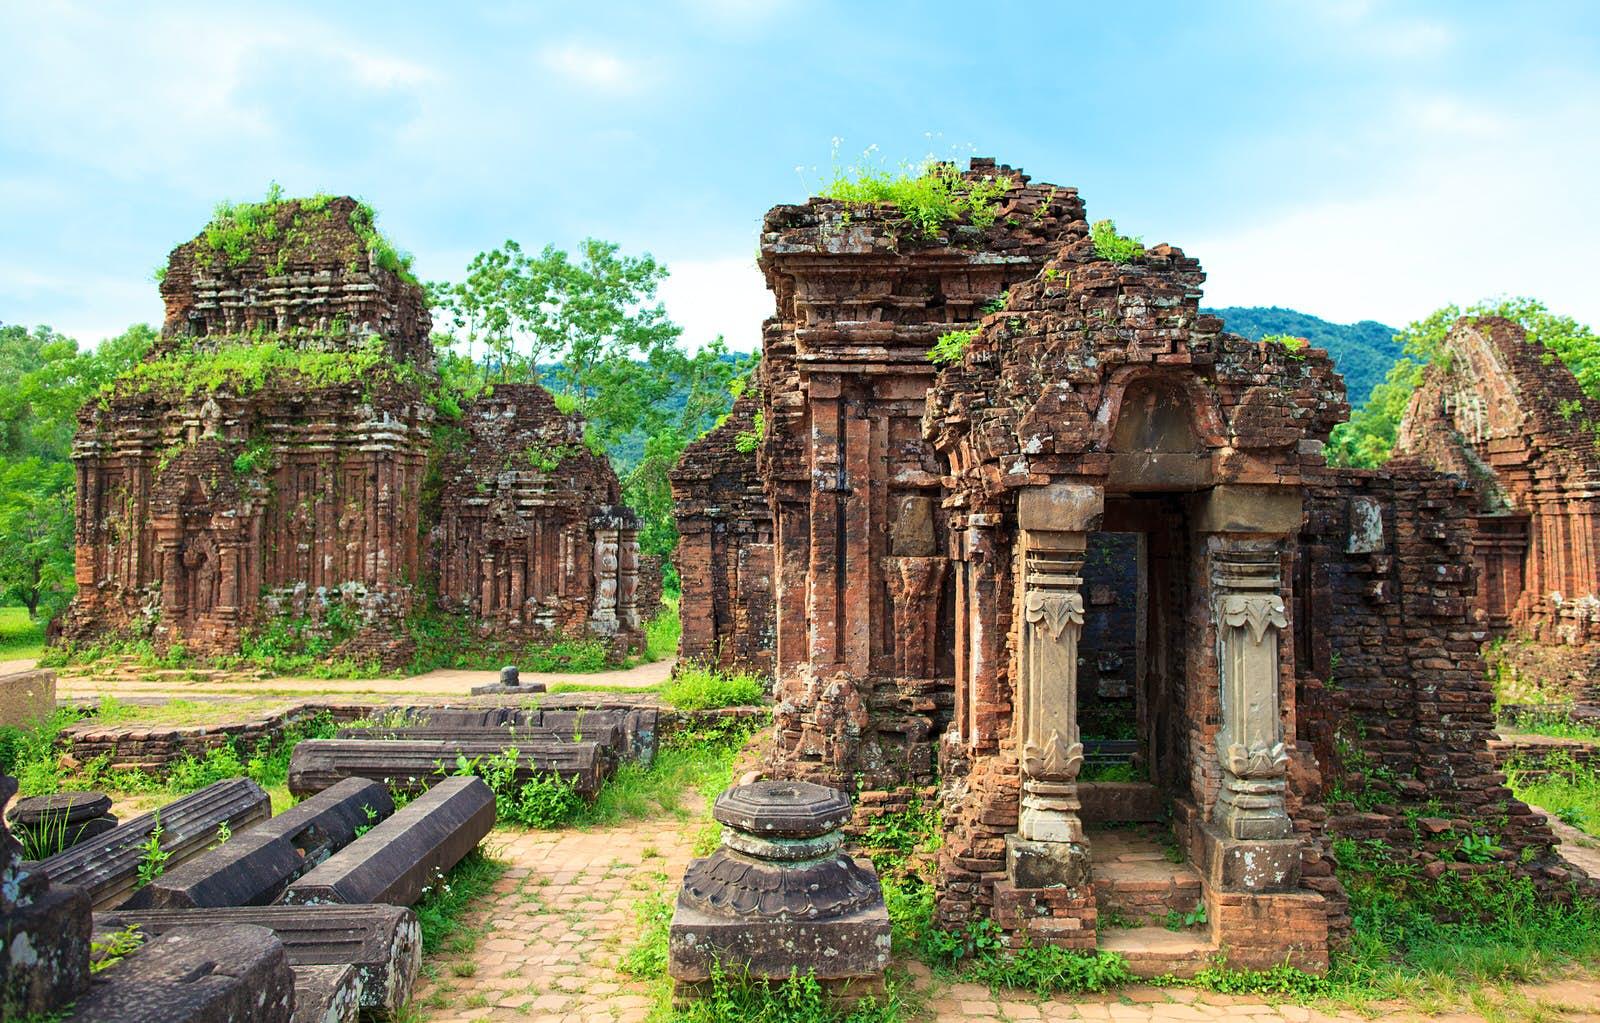 The remains of some columned temples, with plants growing from the top of them can be seen at the Cham ruins near Hoi An